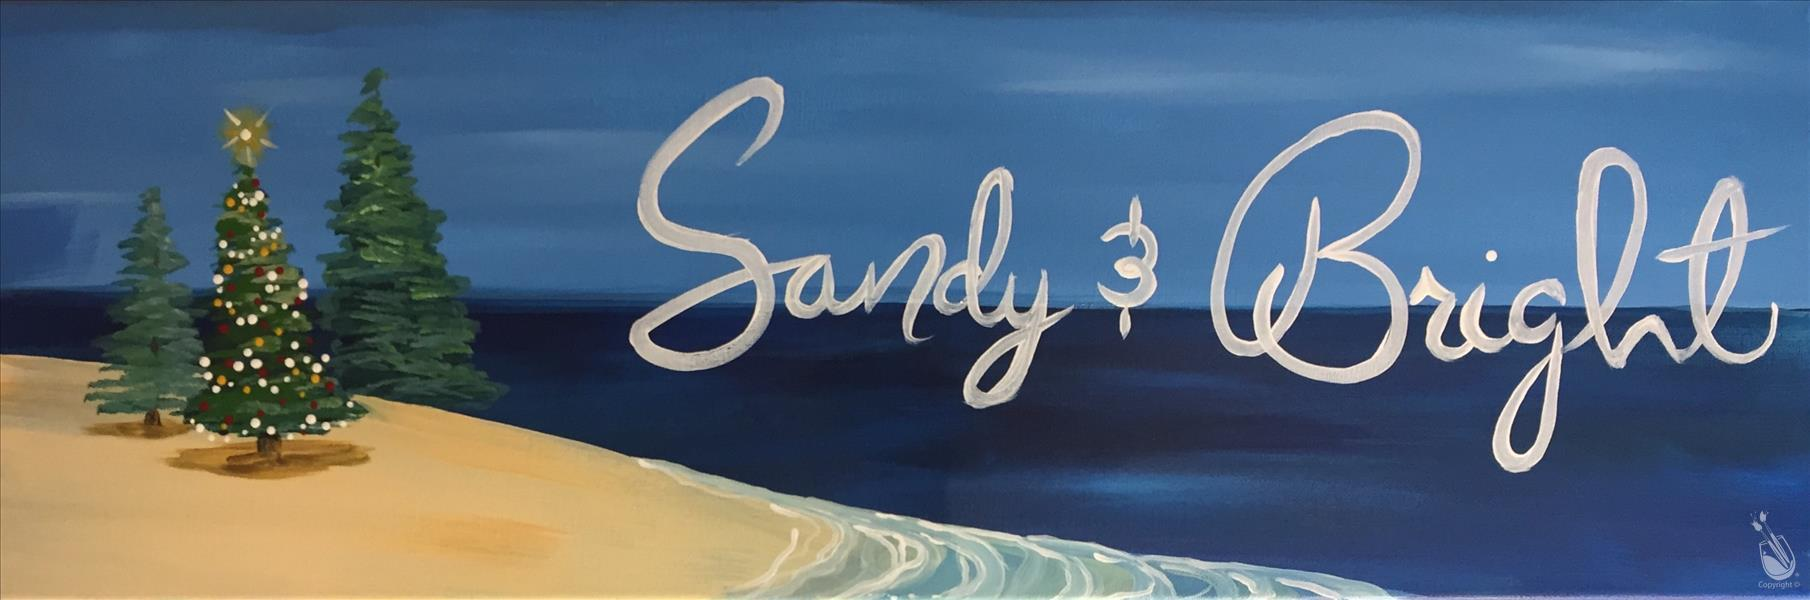 Sandy and Bright 2